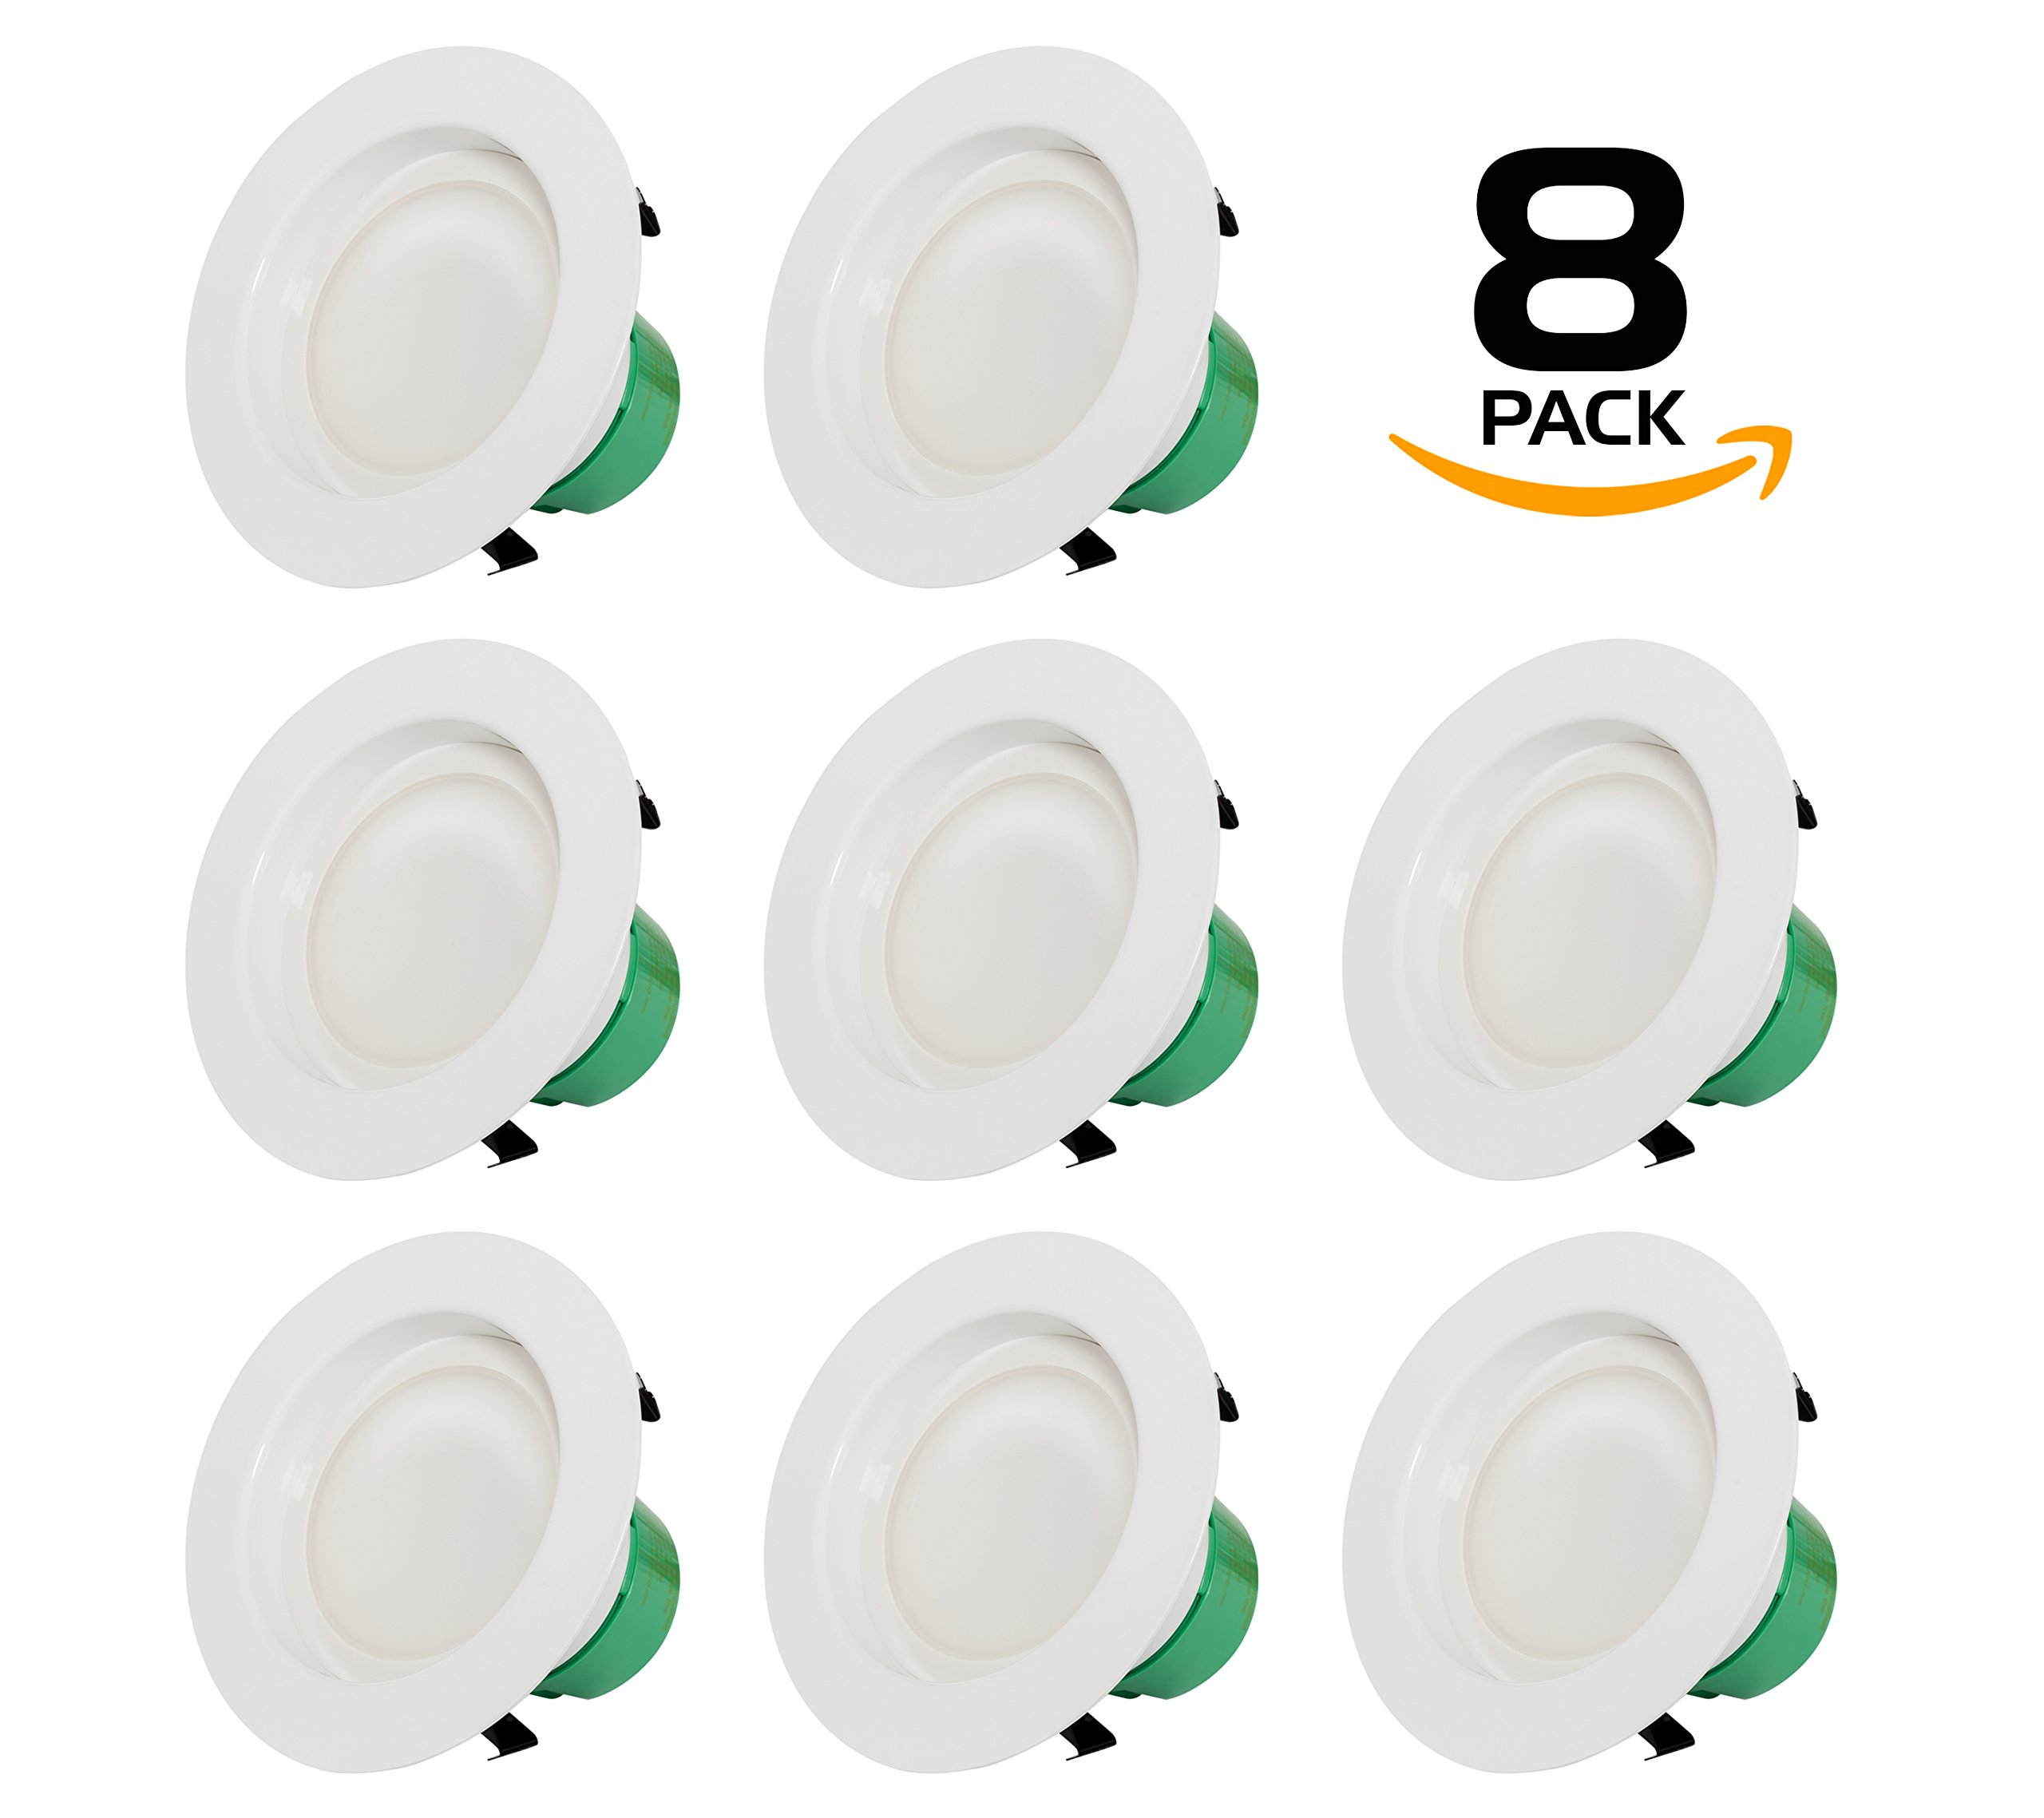 Westgate Lighting 19 Watt 6'' Inch Recessed Lighting Kit Dimmable LED Retrofit Downlight With Integrated Smooth Trim 120V - 5 Year Warranty (3500K Neutral White, 8 Pack) by Westgate